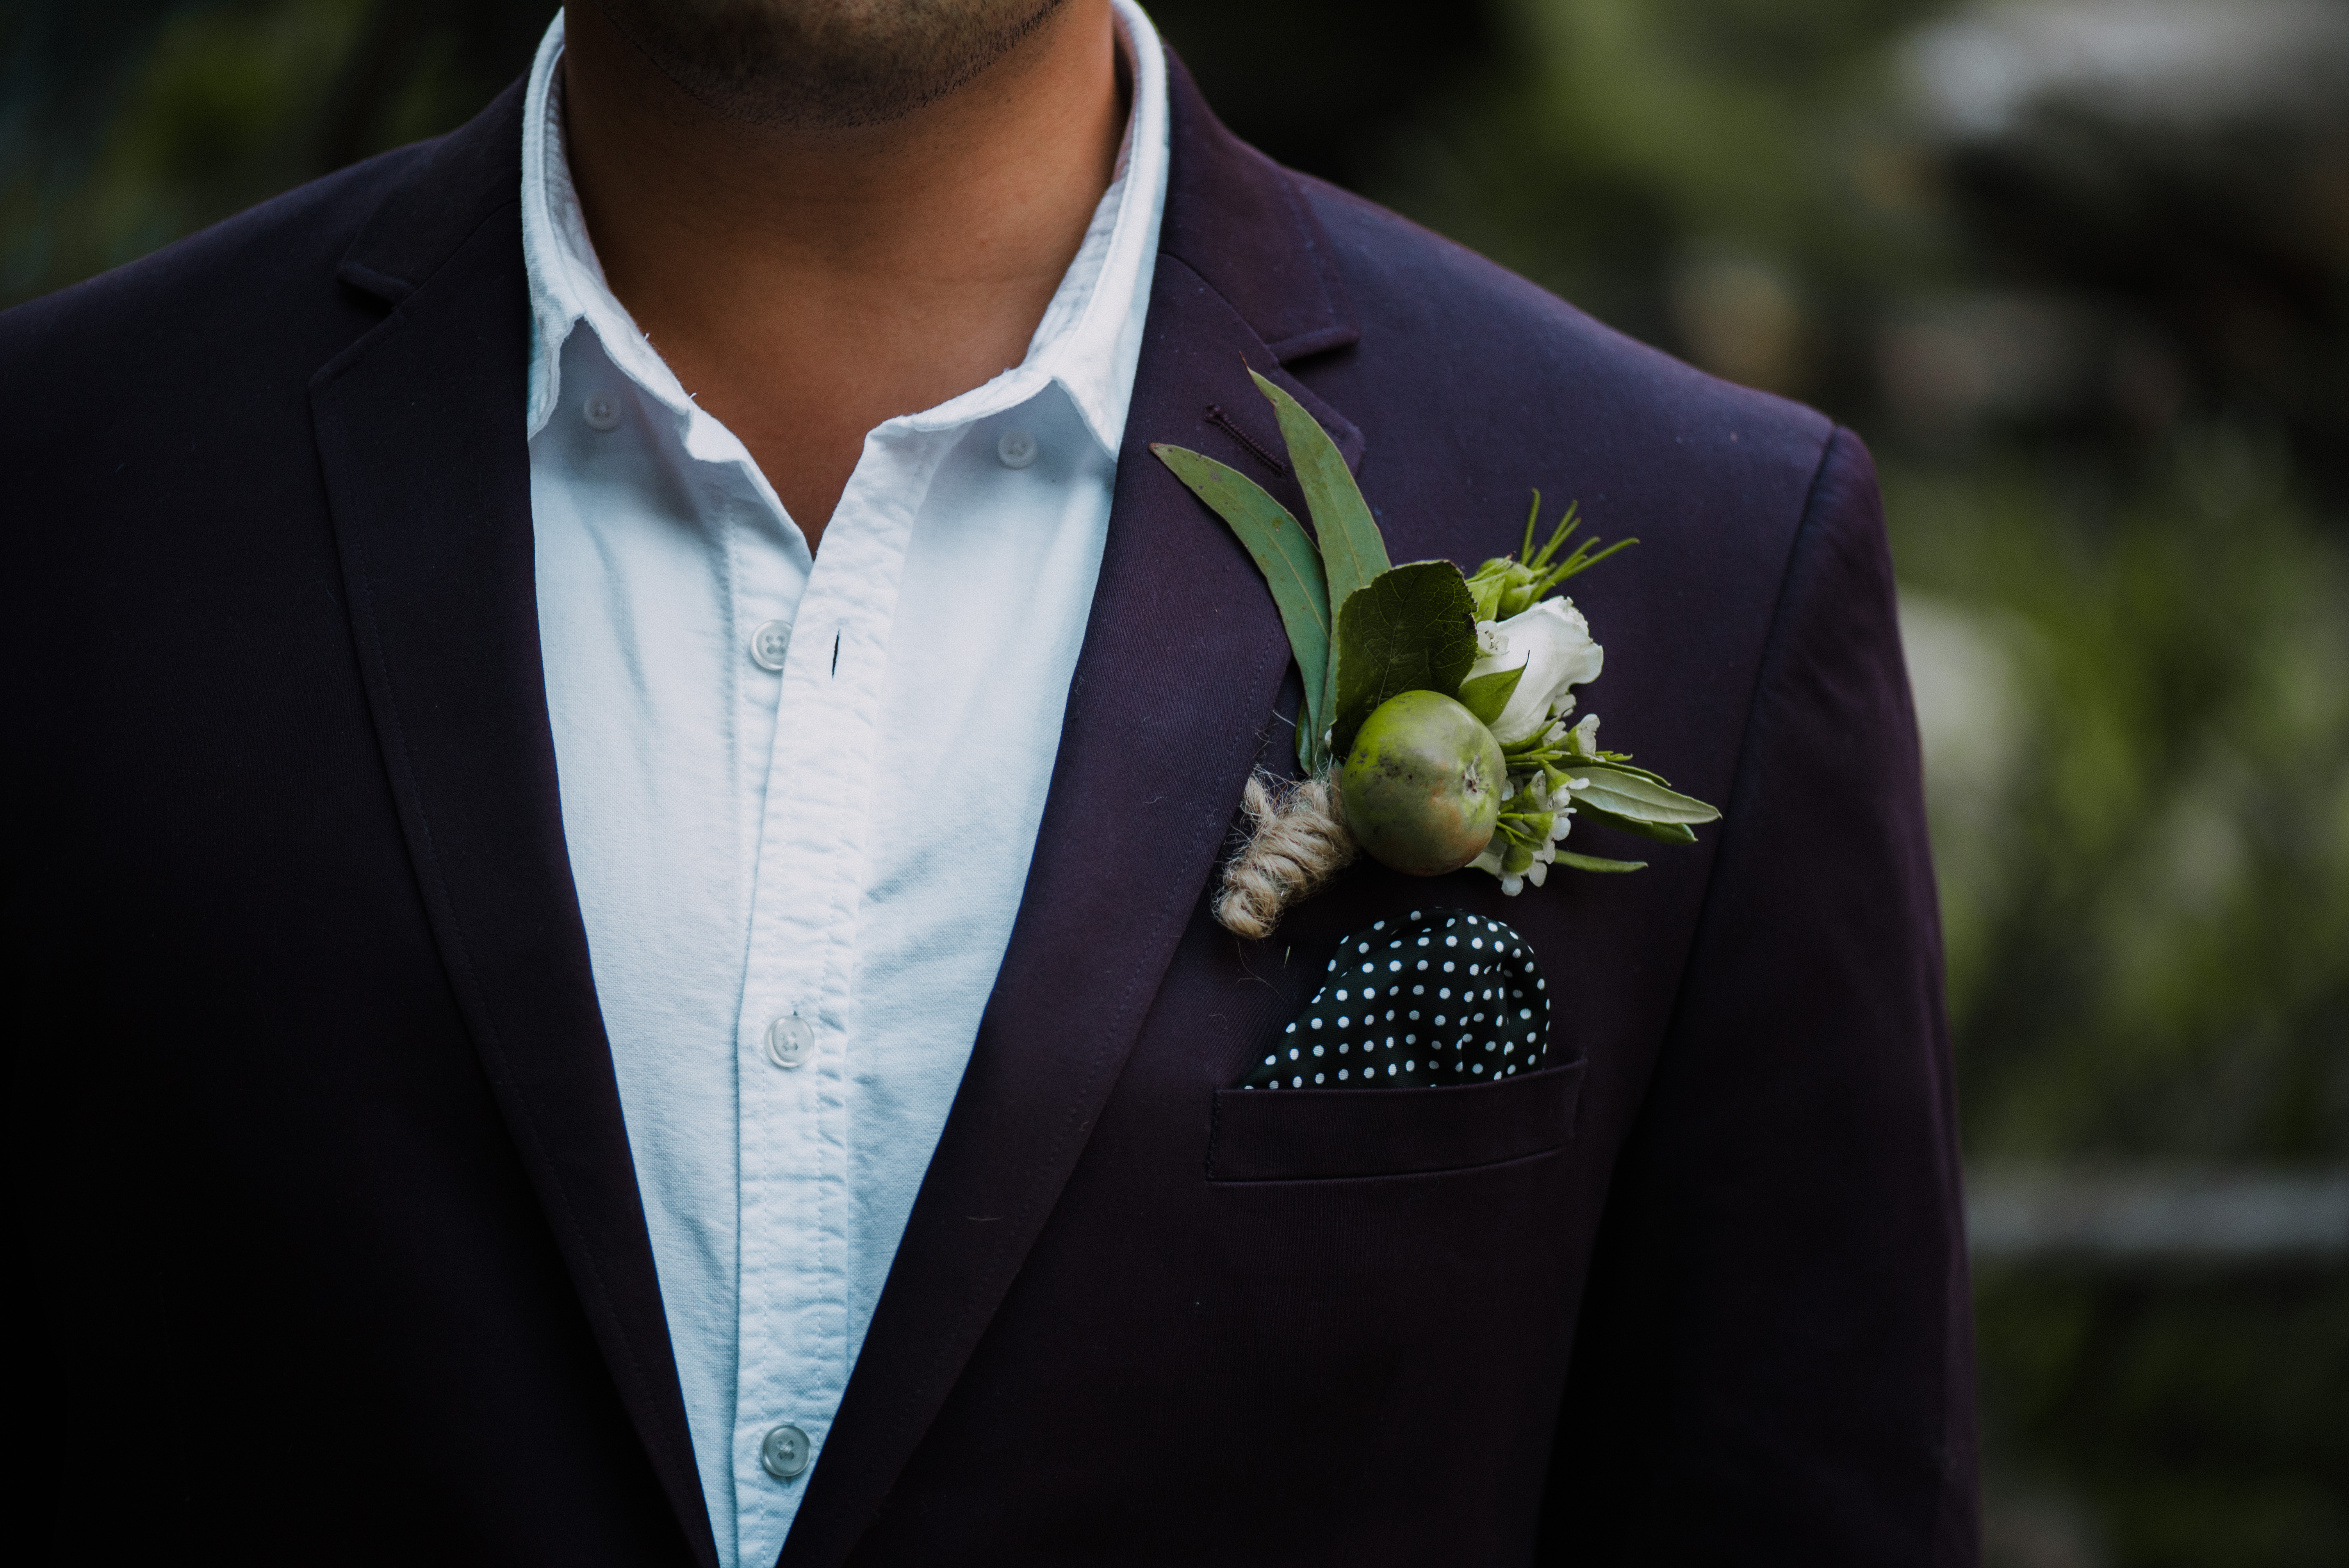 poppy-pod-wedding-boutonniere-translucent-photography